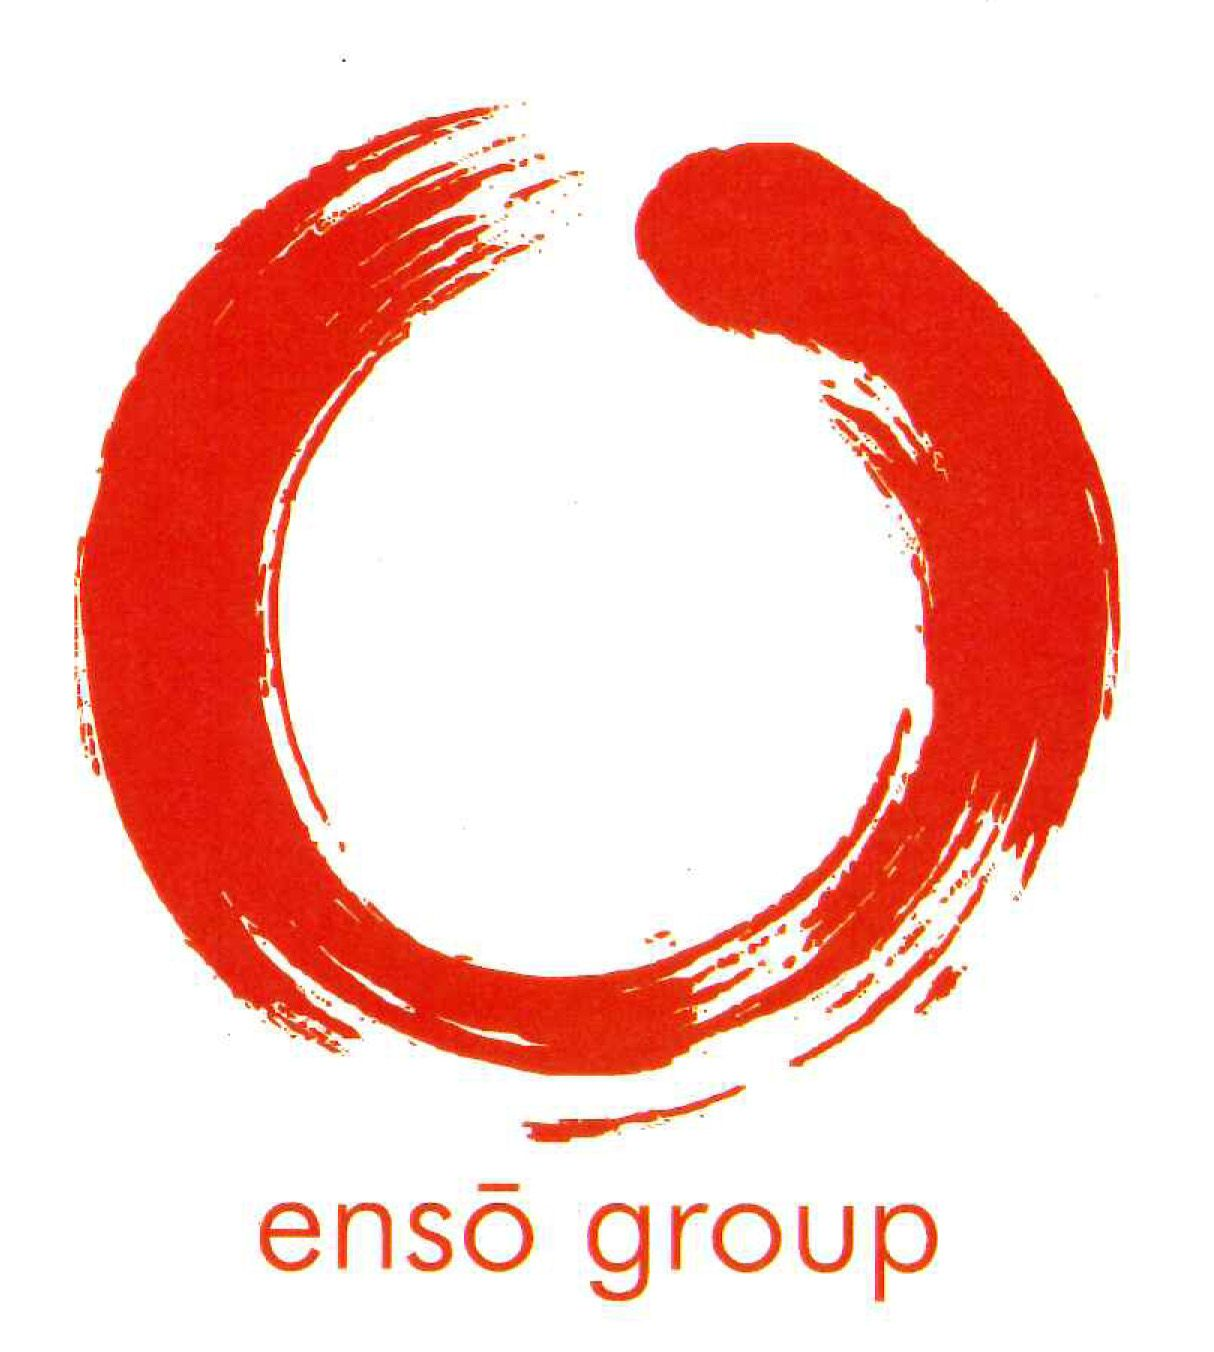 Enso want this in a tatt